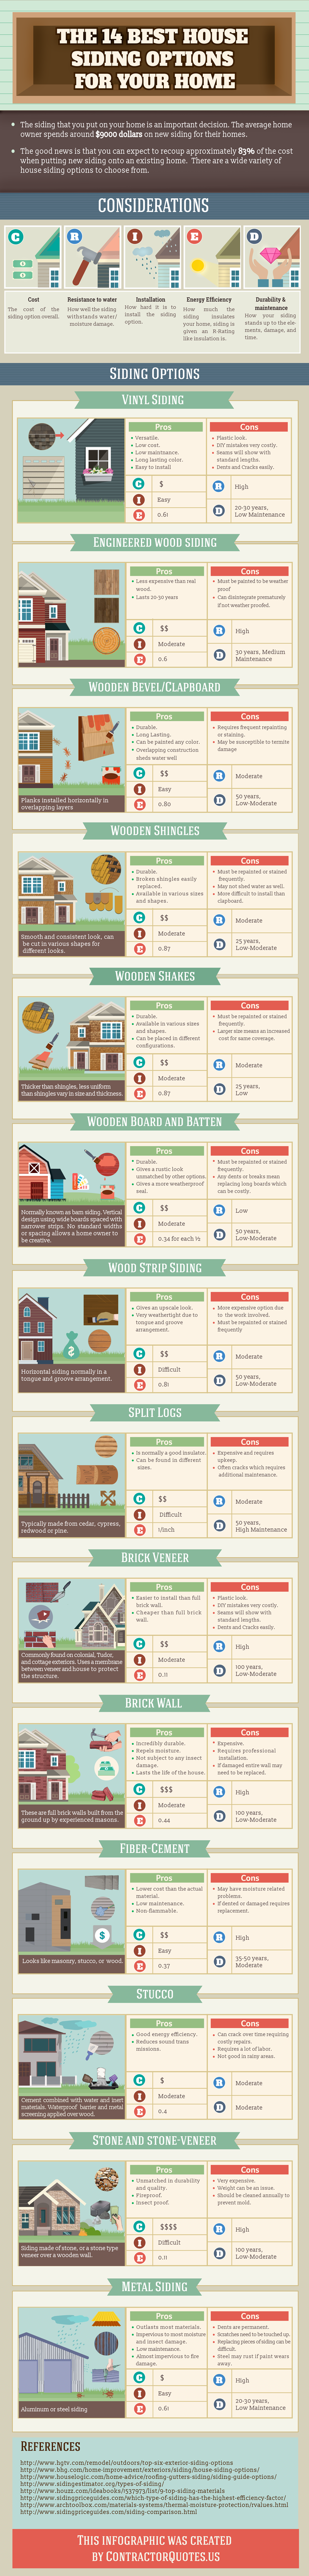 infographic describing the pros and cons of different home siding options